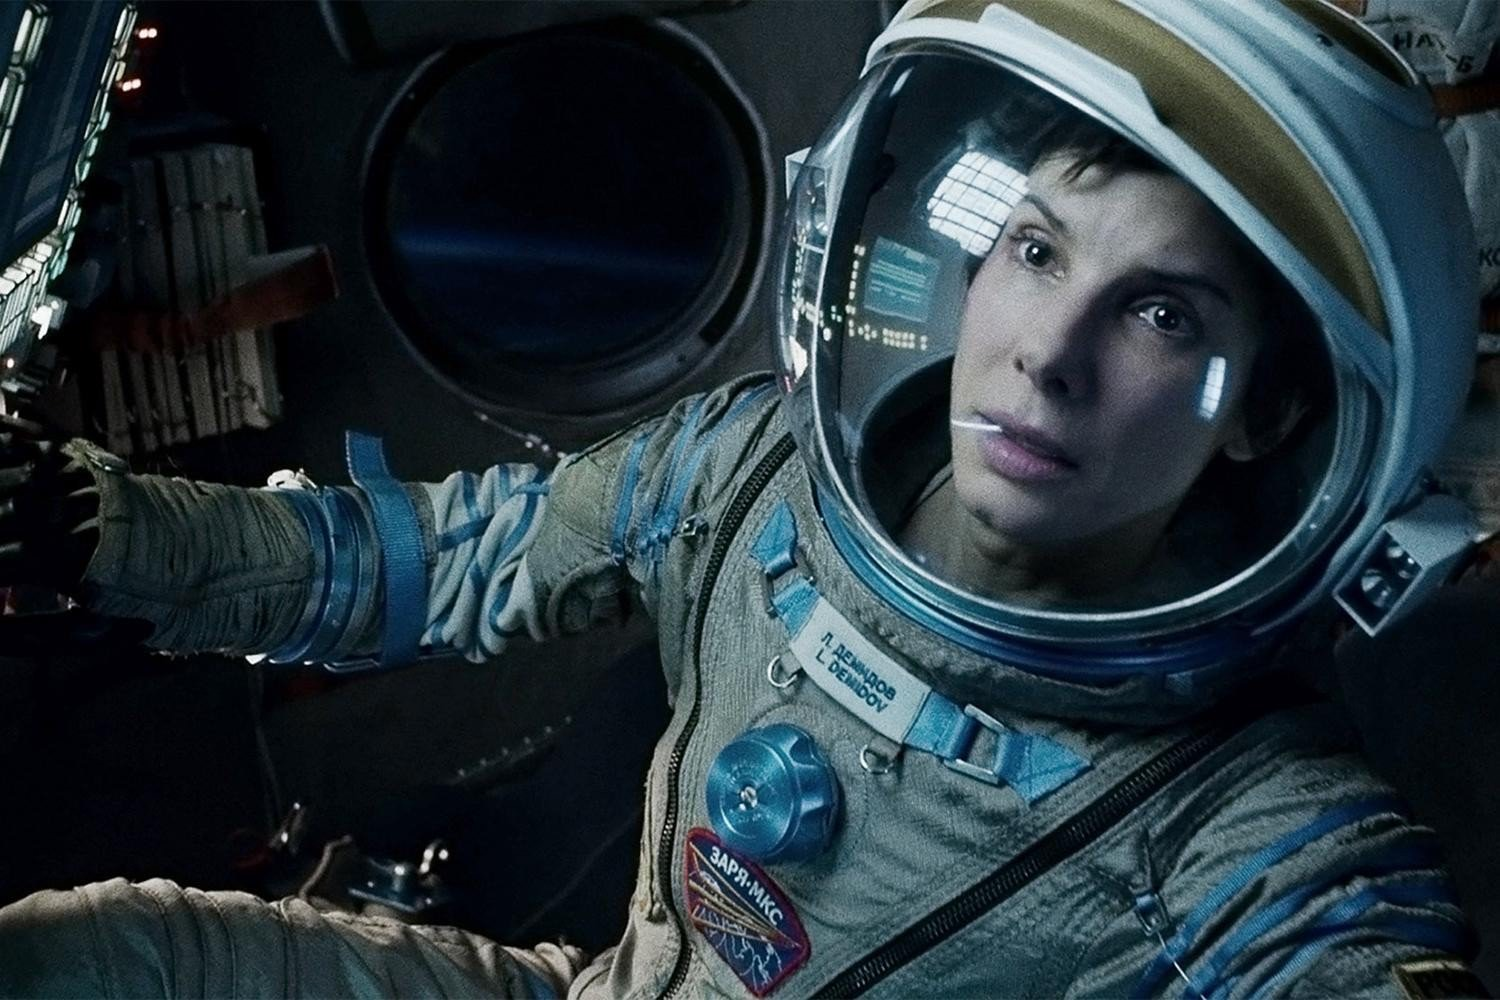 Gravity - by Alfonso CuarónA grieving mother has isolated herself in her work after the death of her child. Forced into actual isolation after an accident, her survival instincts kick in as she fights for a way to get back to Earth. Another alone in space story- simple concept, incredible execution. Budget: $130 million